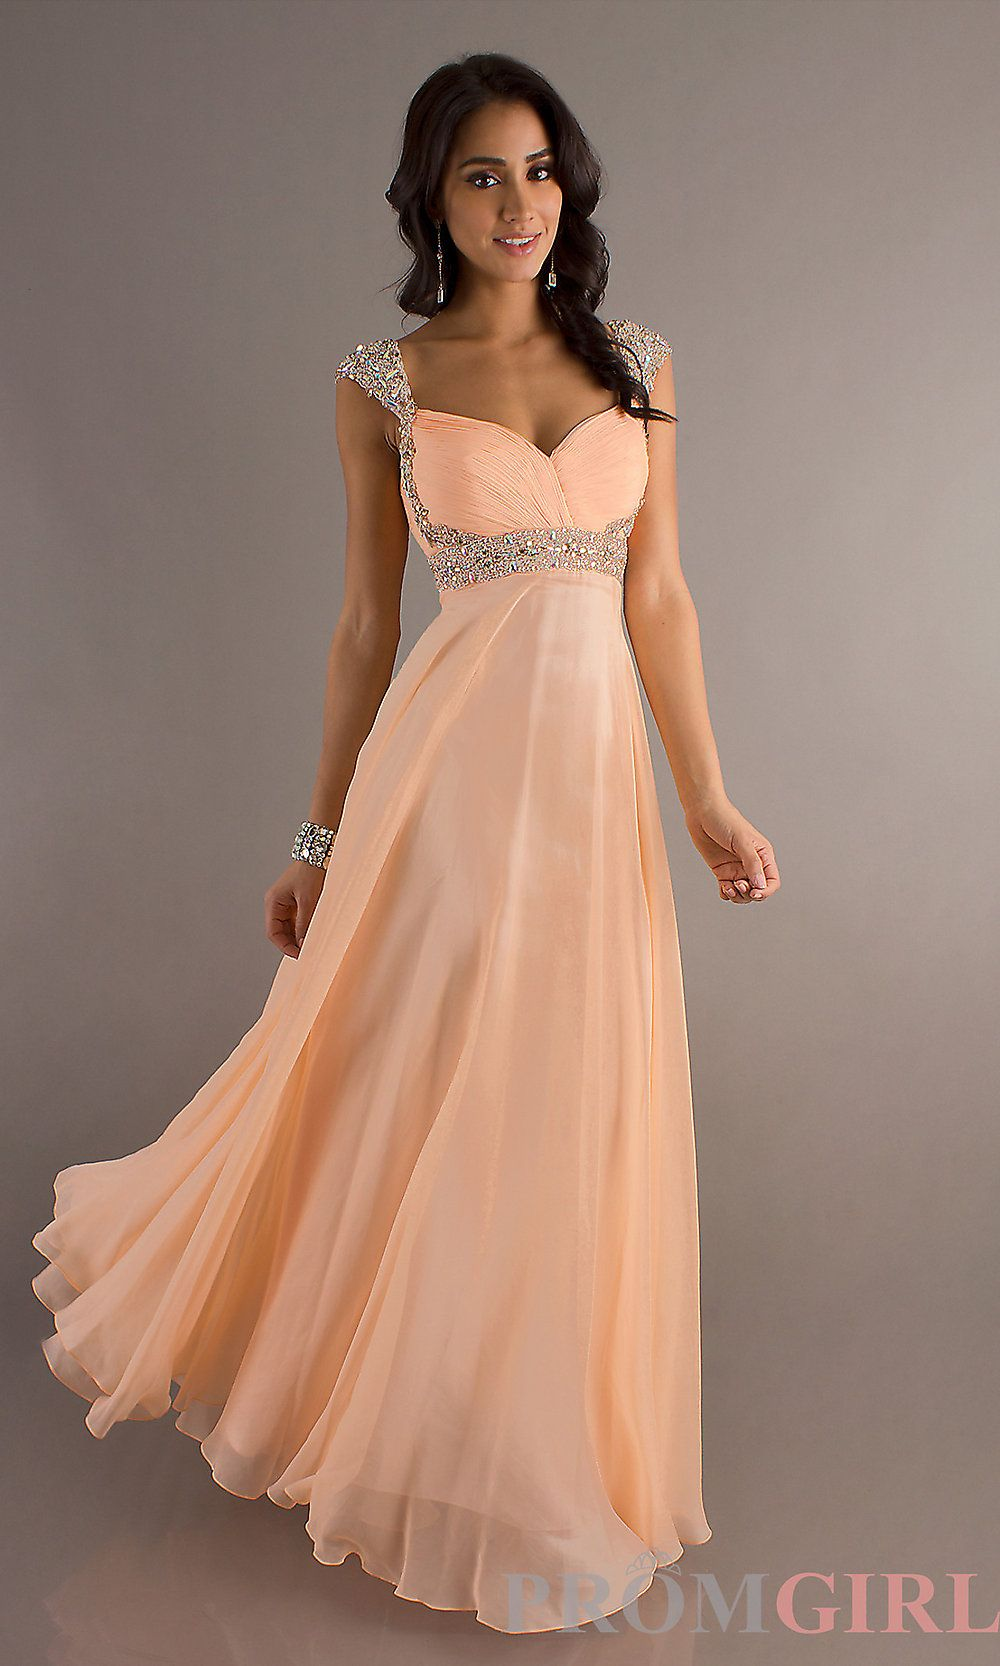 Pin by emmer on fashion pinterest prom dresses dresses and gowns